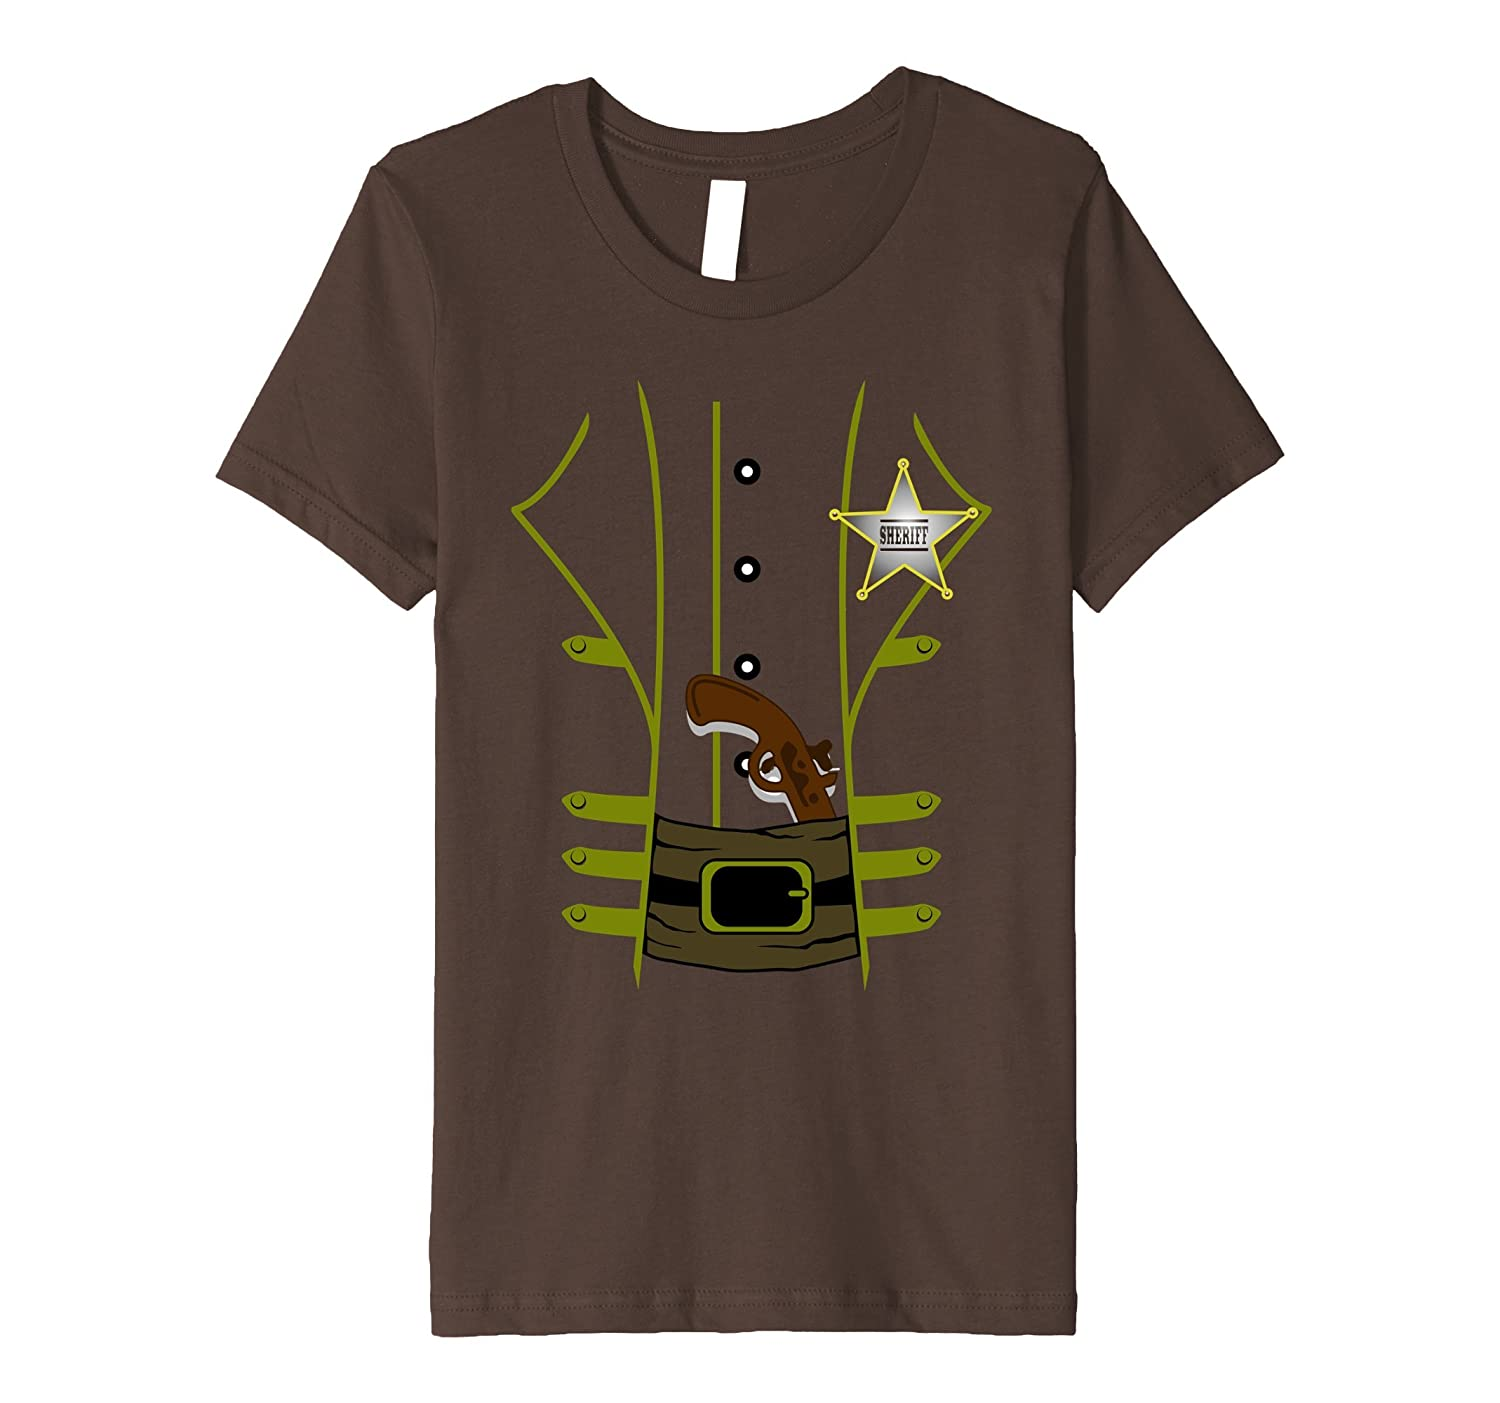 Western Sheriff Costume Tshirt - Men Women Youth Shirt